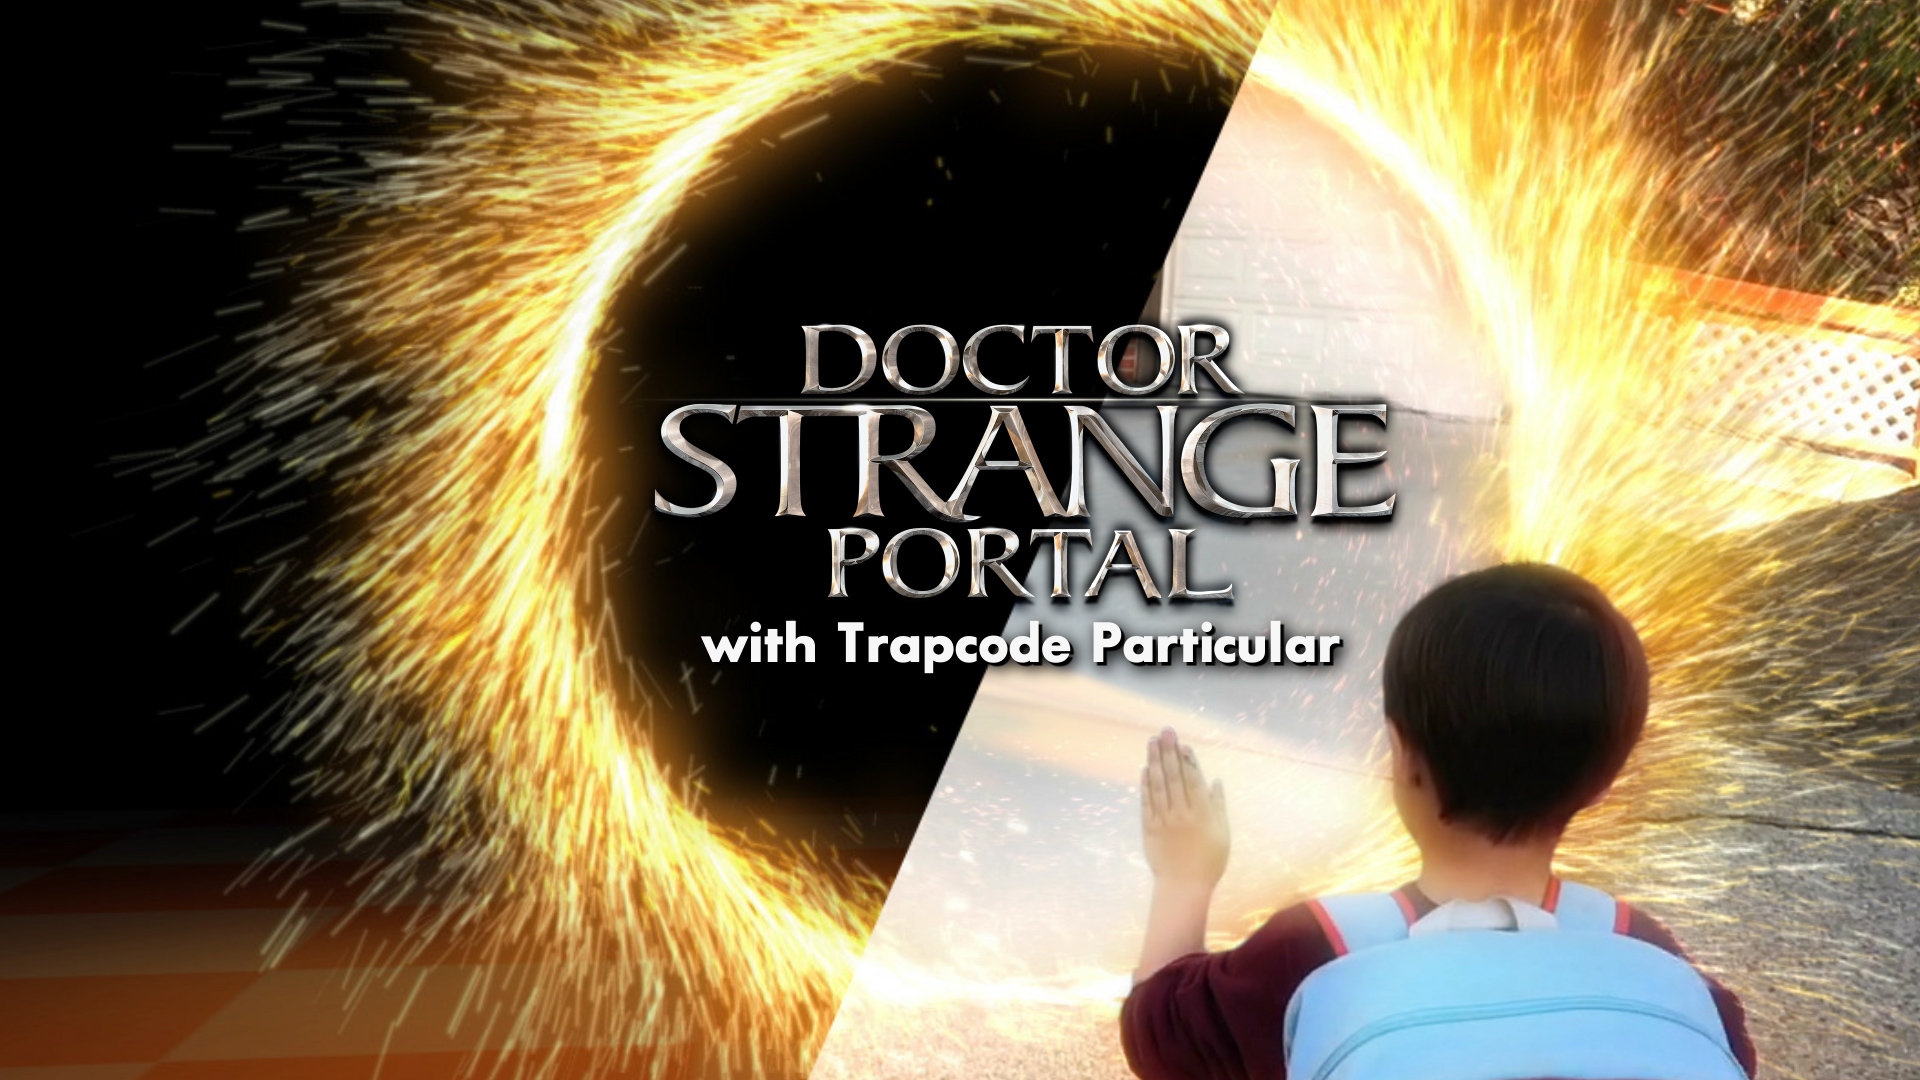 Episode #110: Dr. Strange Portal Effect with Trapcode Particular